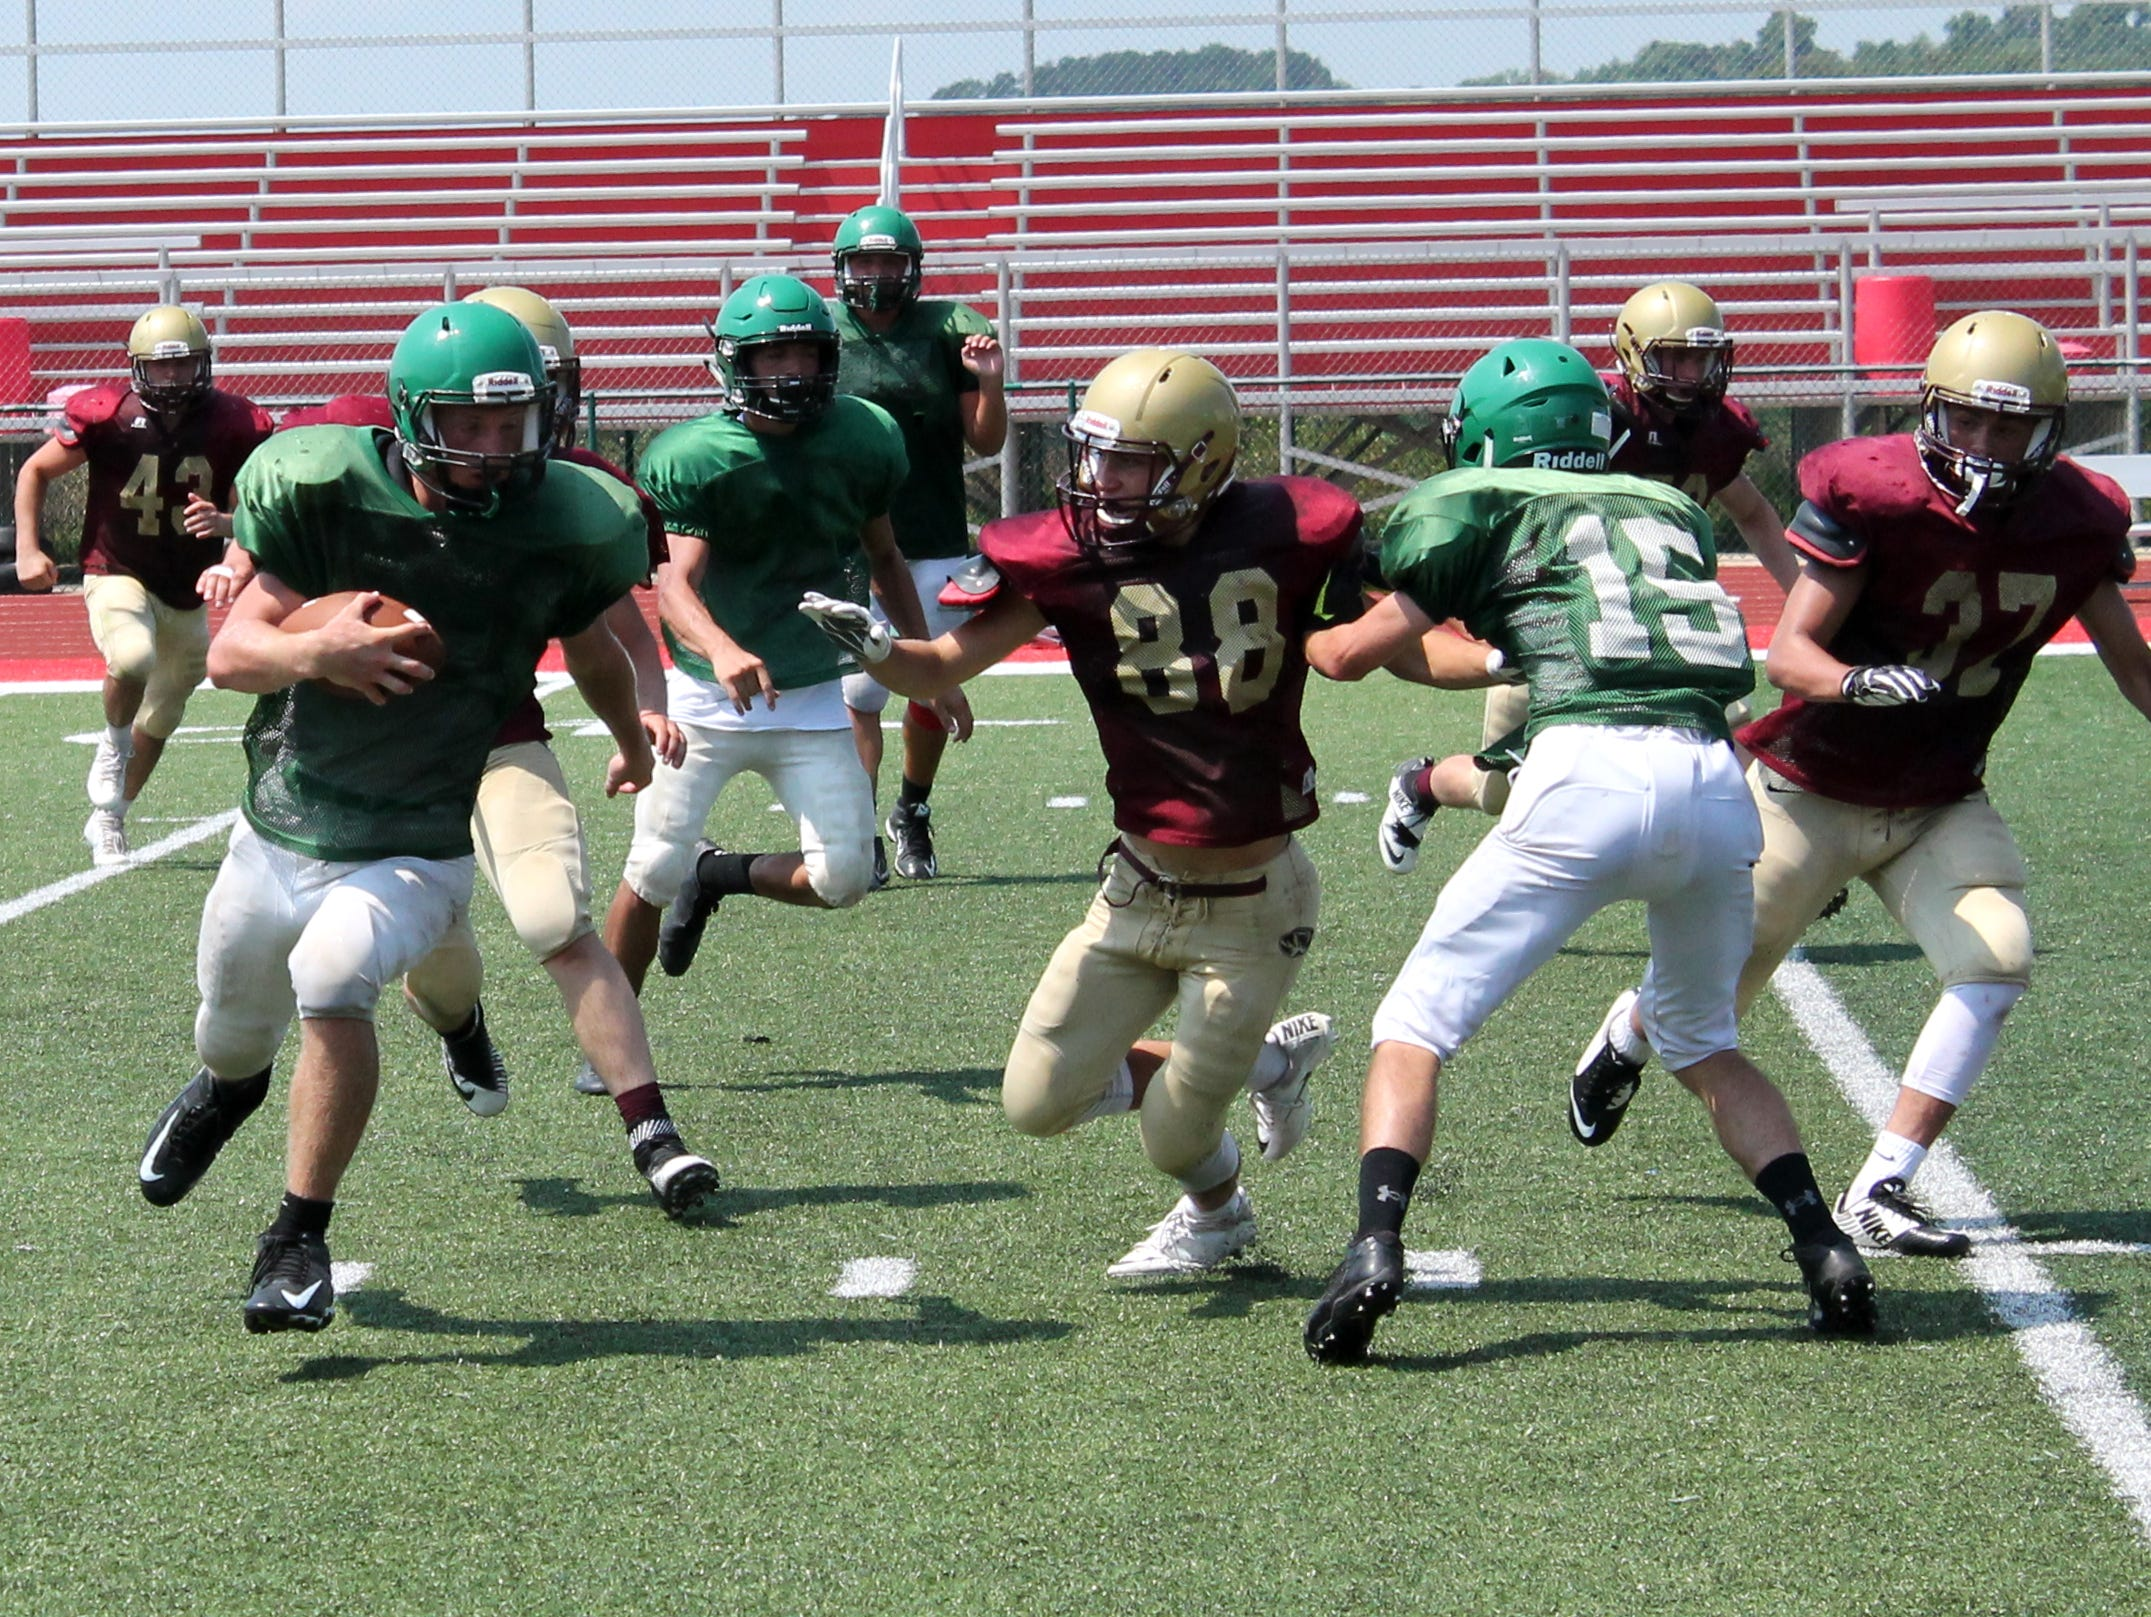 Mt. Vernon tight end Tristan Dennis (left) advances the ball against the Eldon defense in a scrimmage at the 2016 Branson Team Camp.